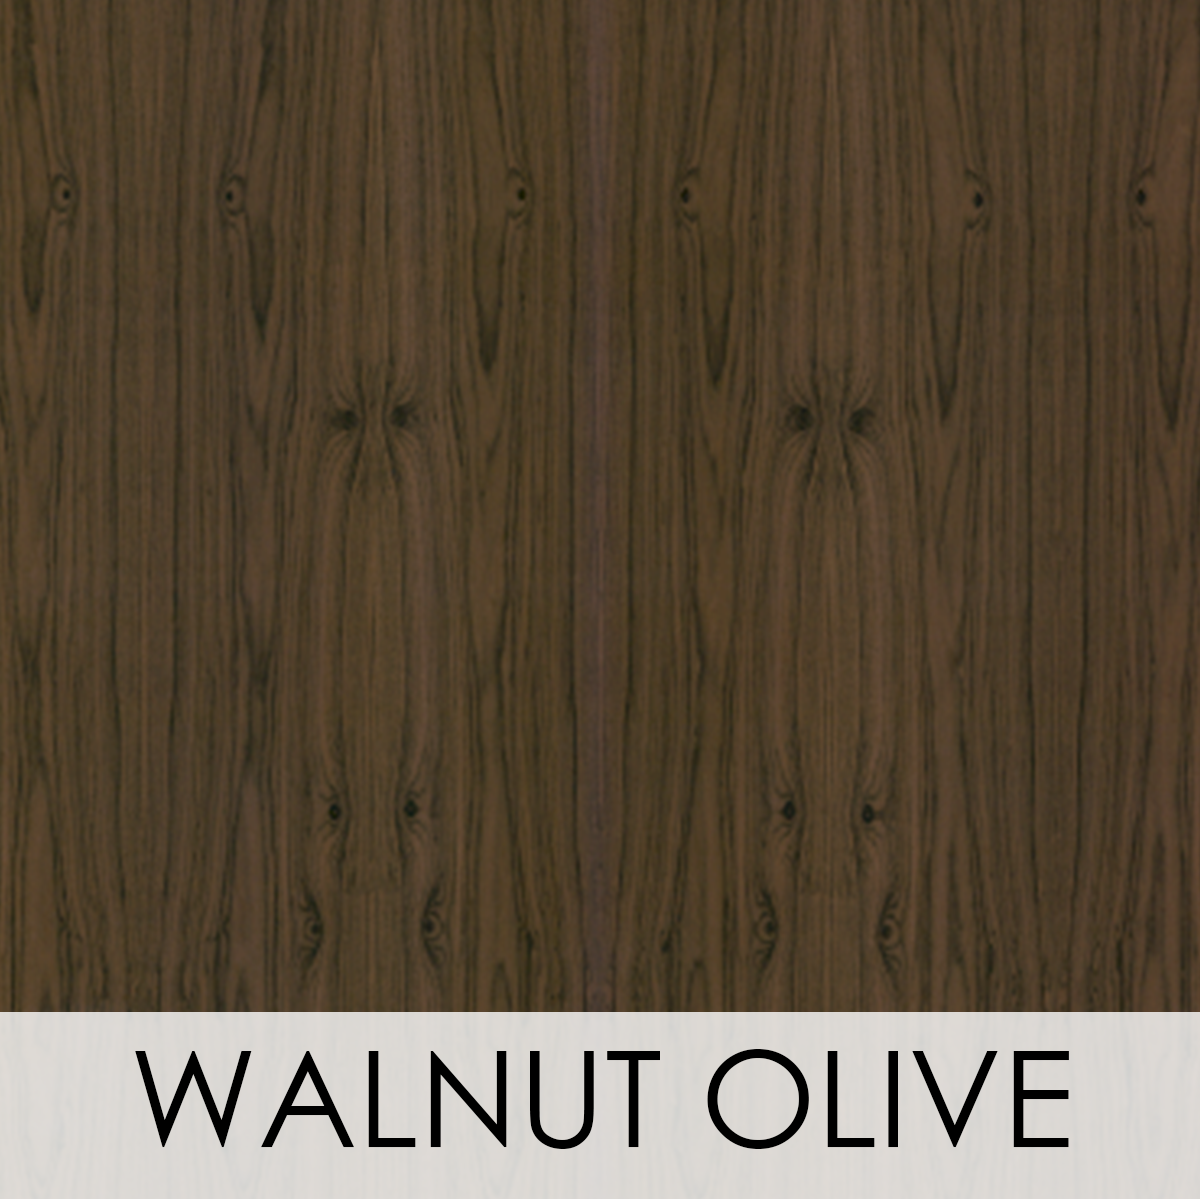 Walnut Olive Wood Veneer Wallcovering